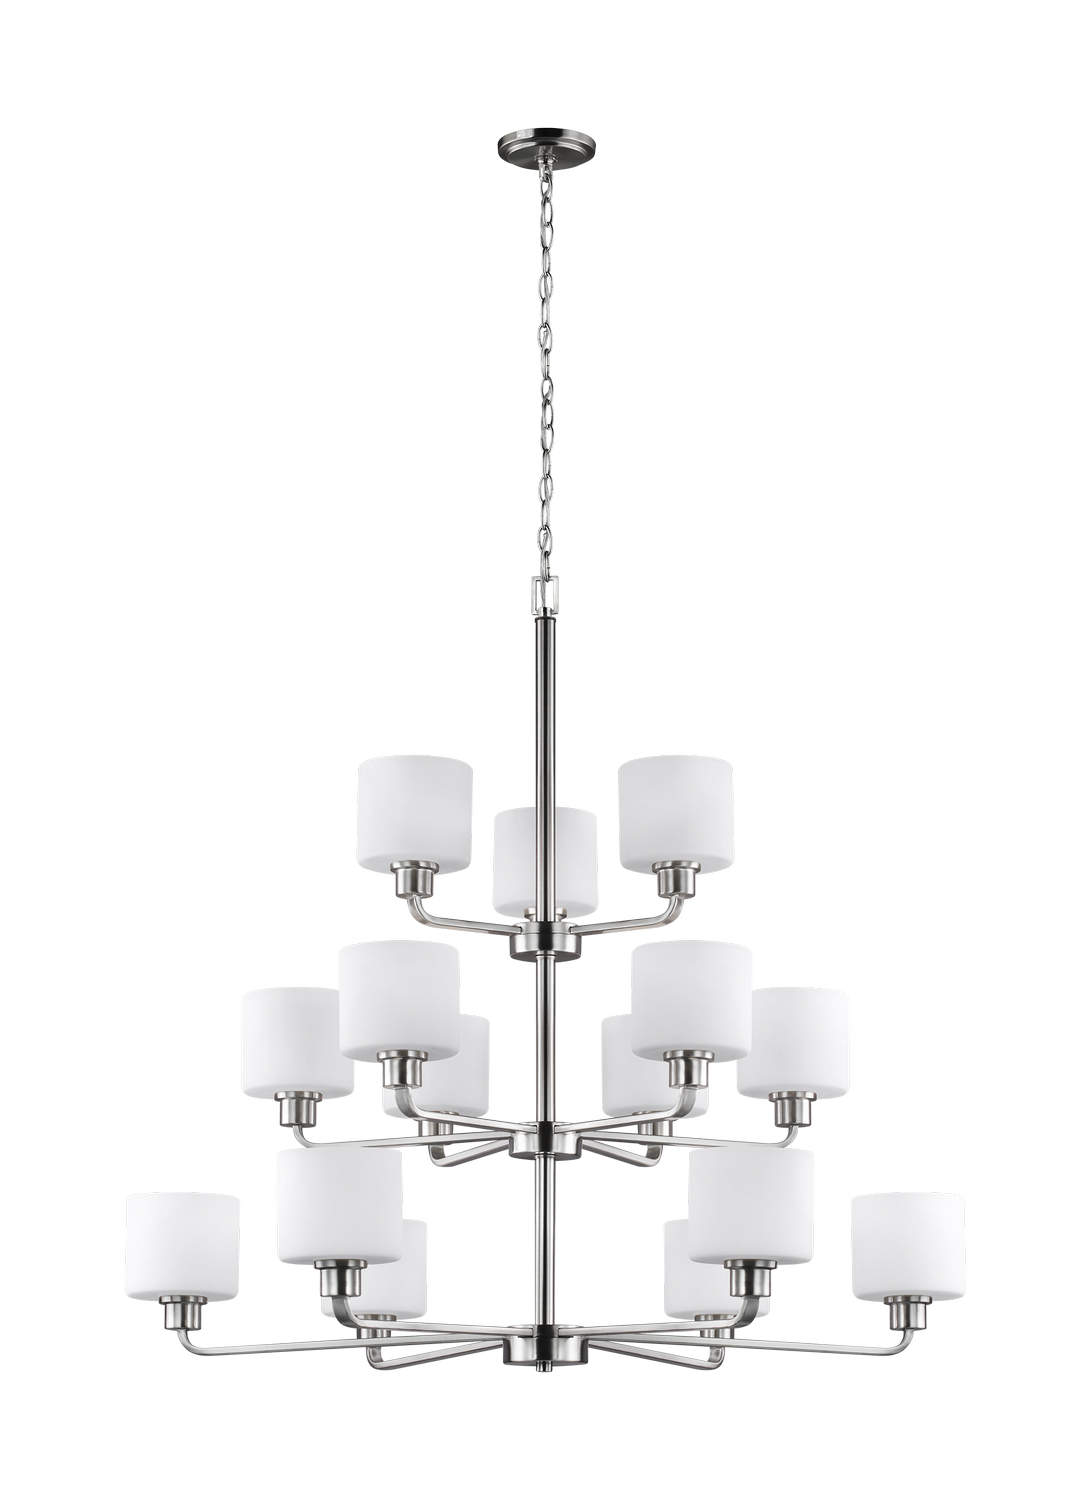 15 Light Chandelier from the Canfield collection by Seagull 3128815 962